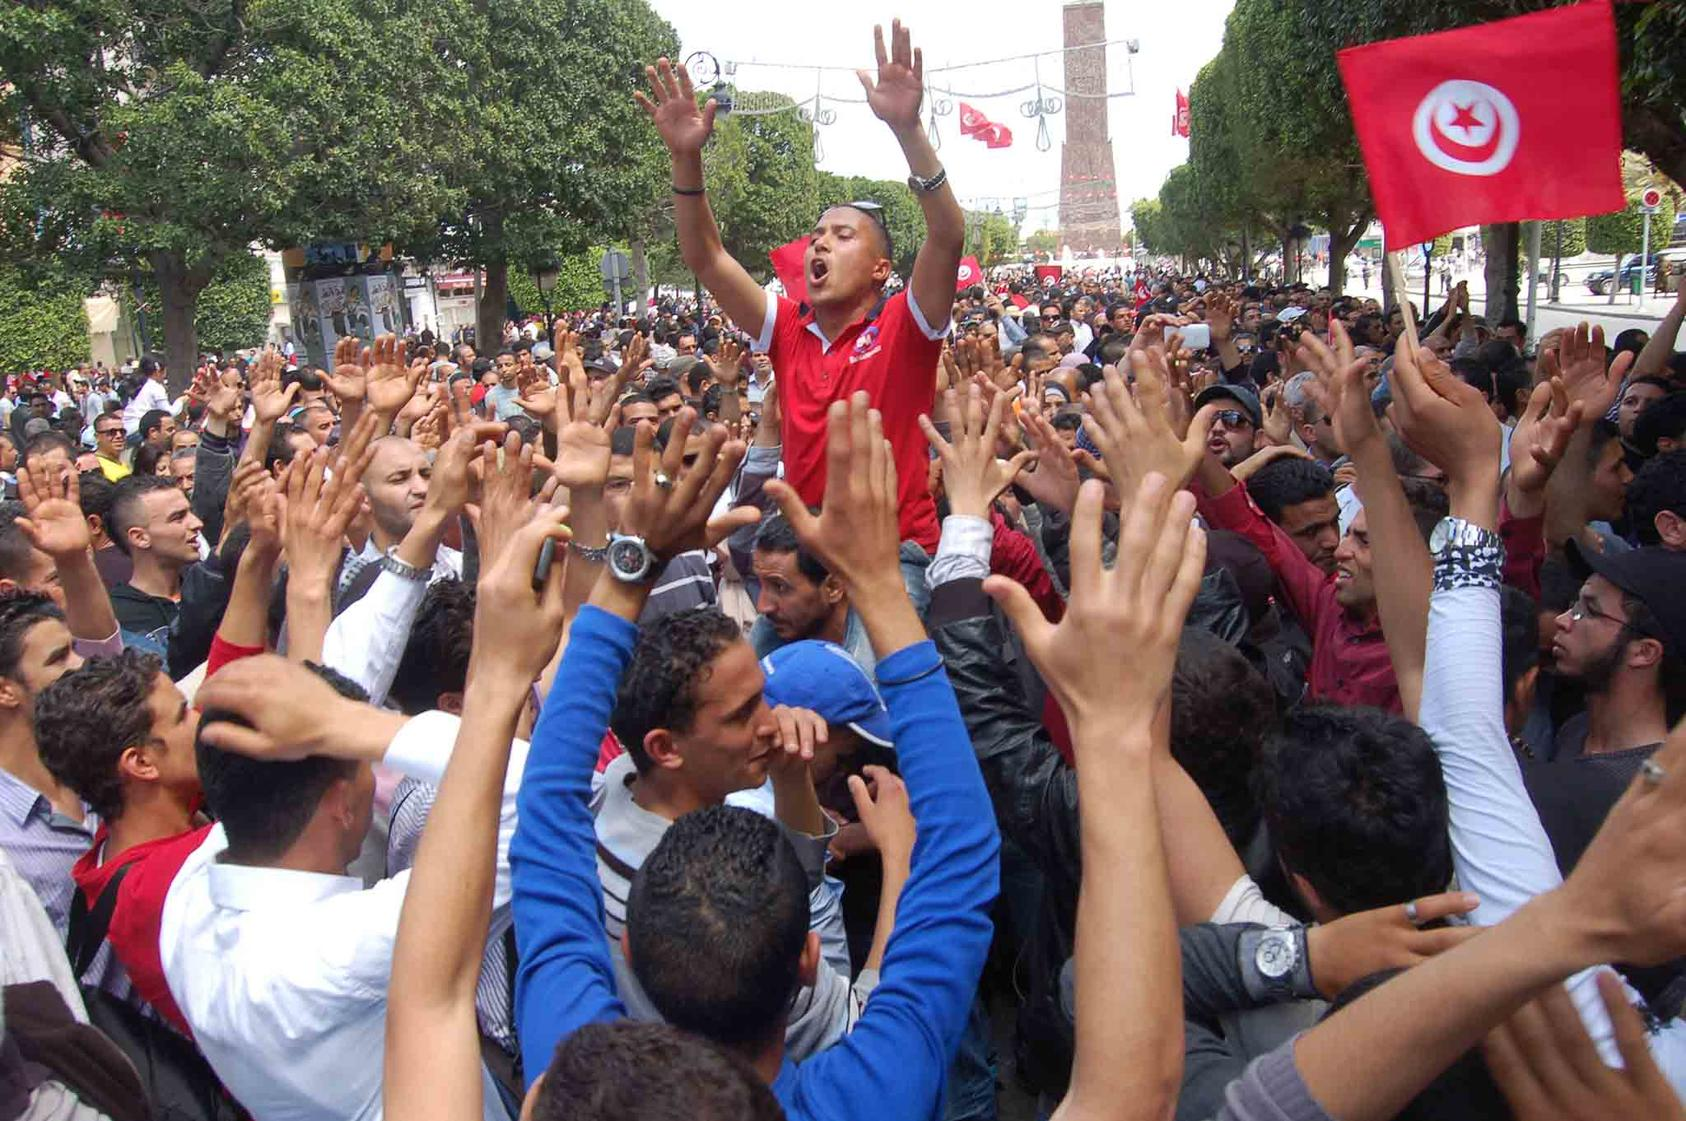 Tunisians demonstrated in Tunis in 2012. The country's nonviolent, pro-democracy movement, fueled largely by youth, competes against the appeal of extremist groups. (Wikimedia/CC License 2.0)